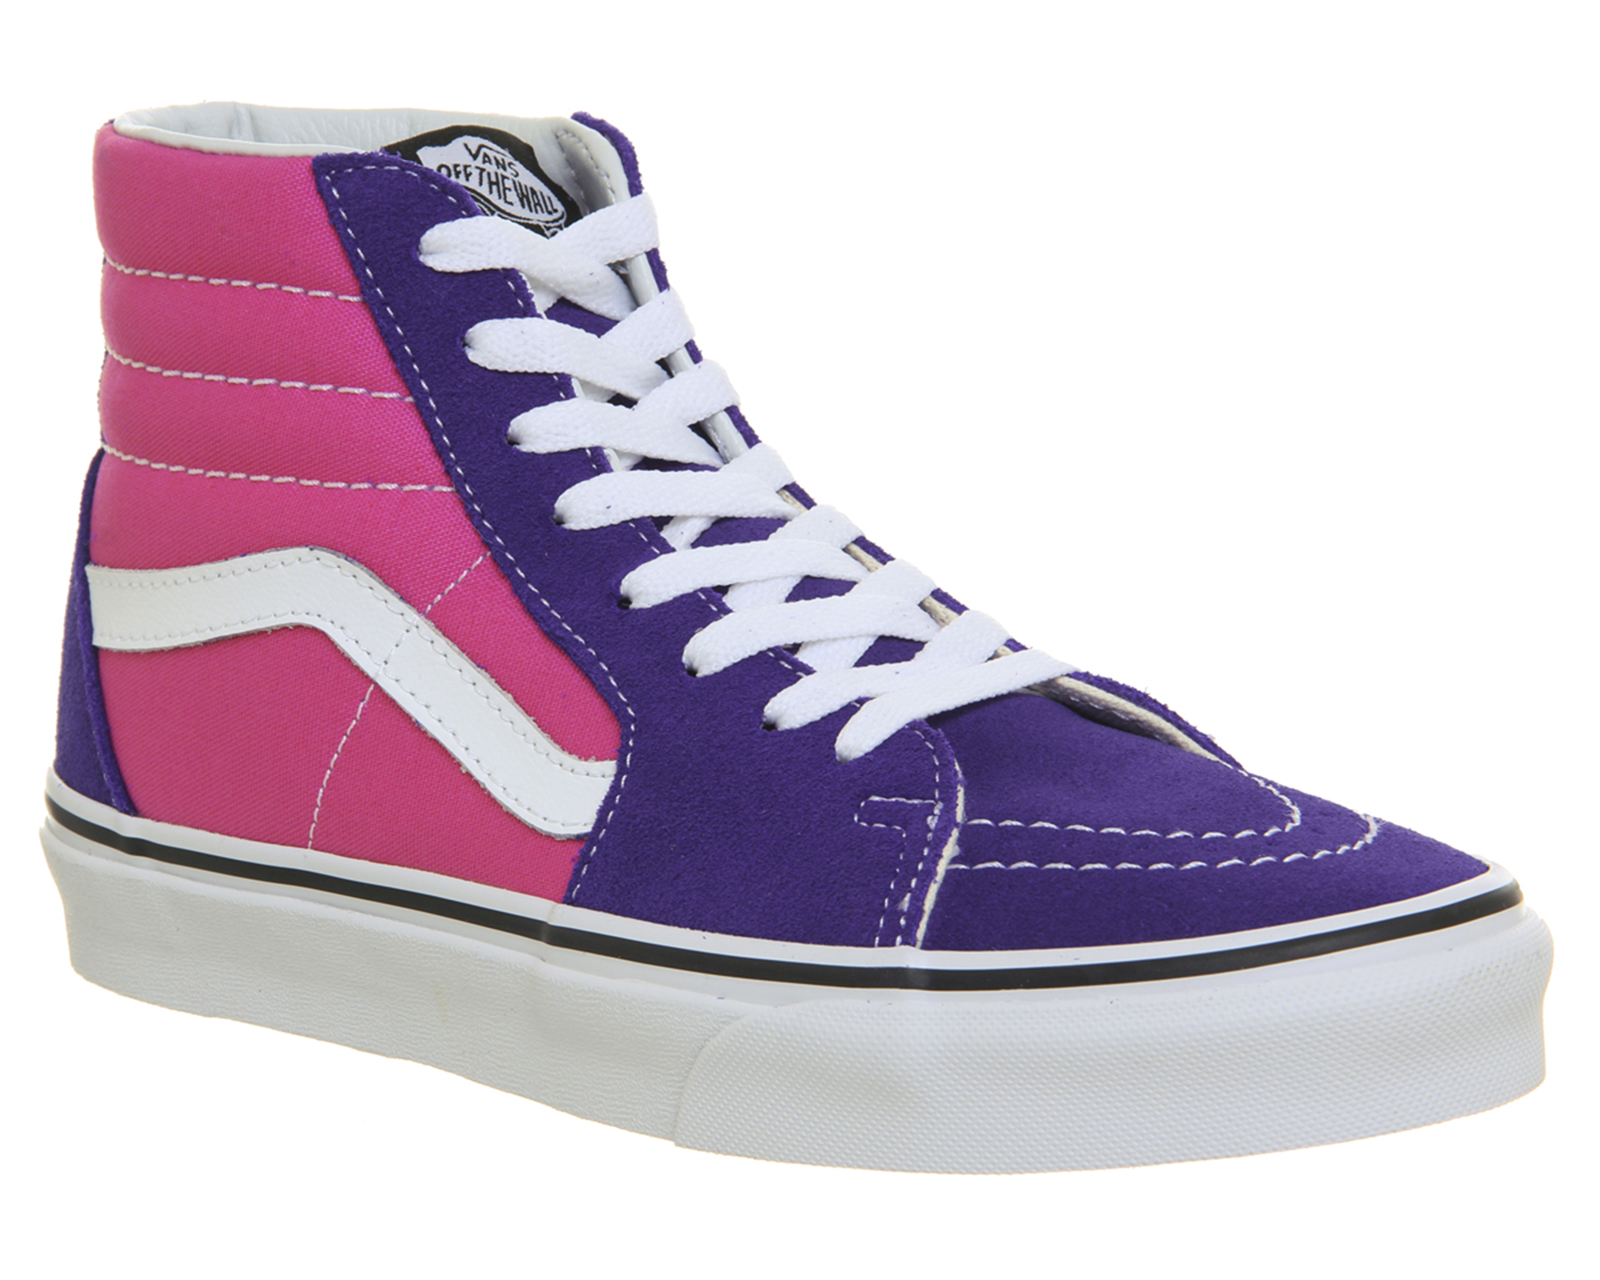 bb917024d290 Sentinel Womens Vans Sk8 Hi Trainers Deep Blue Hot Pink Trainers Shoes